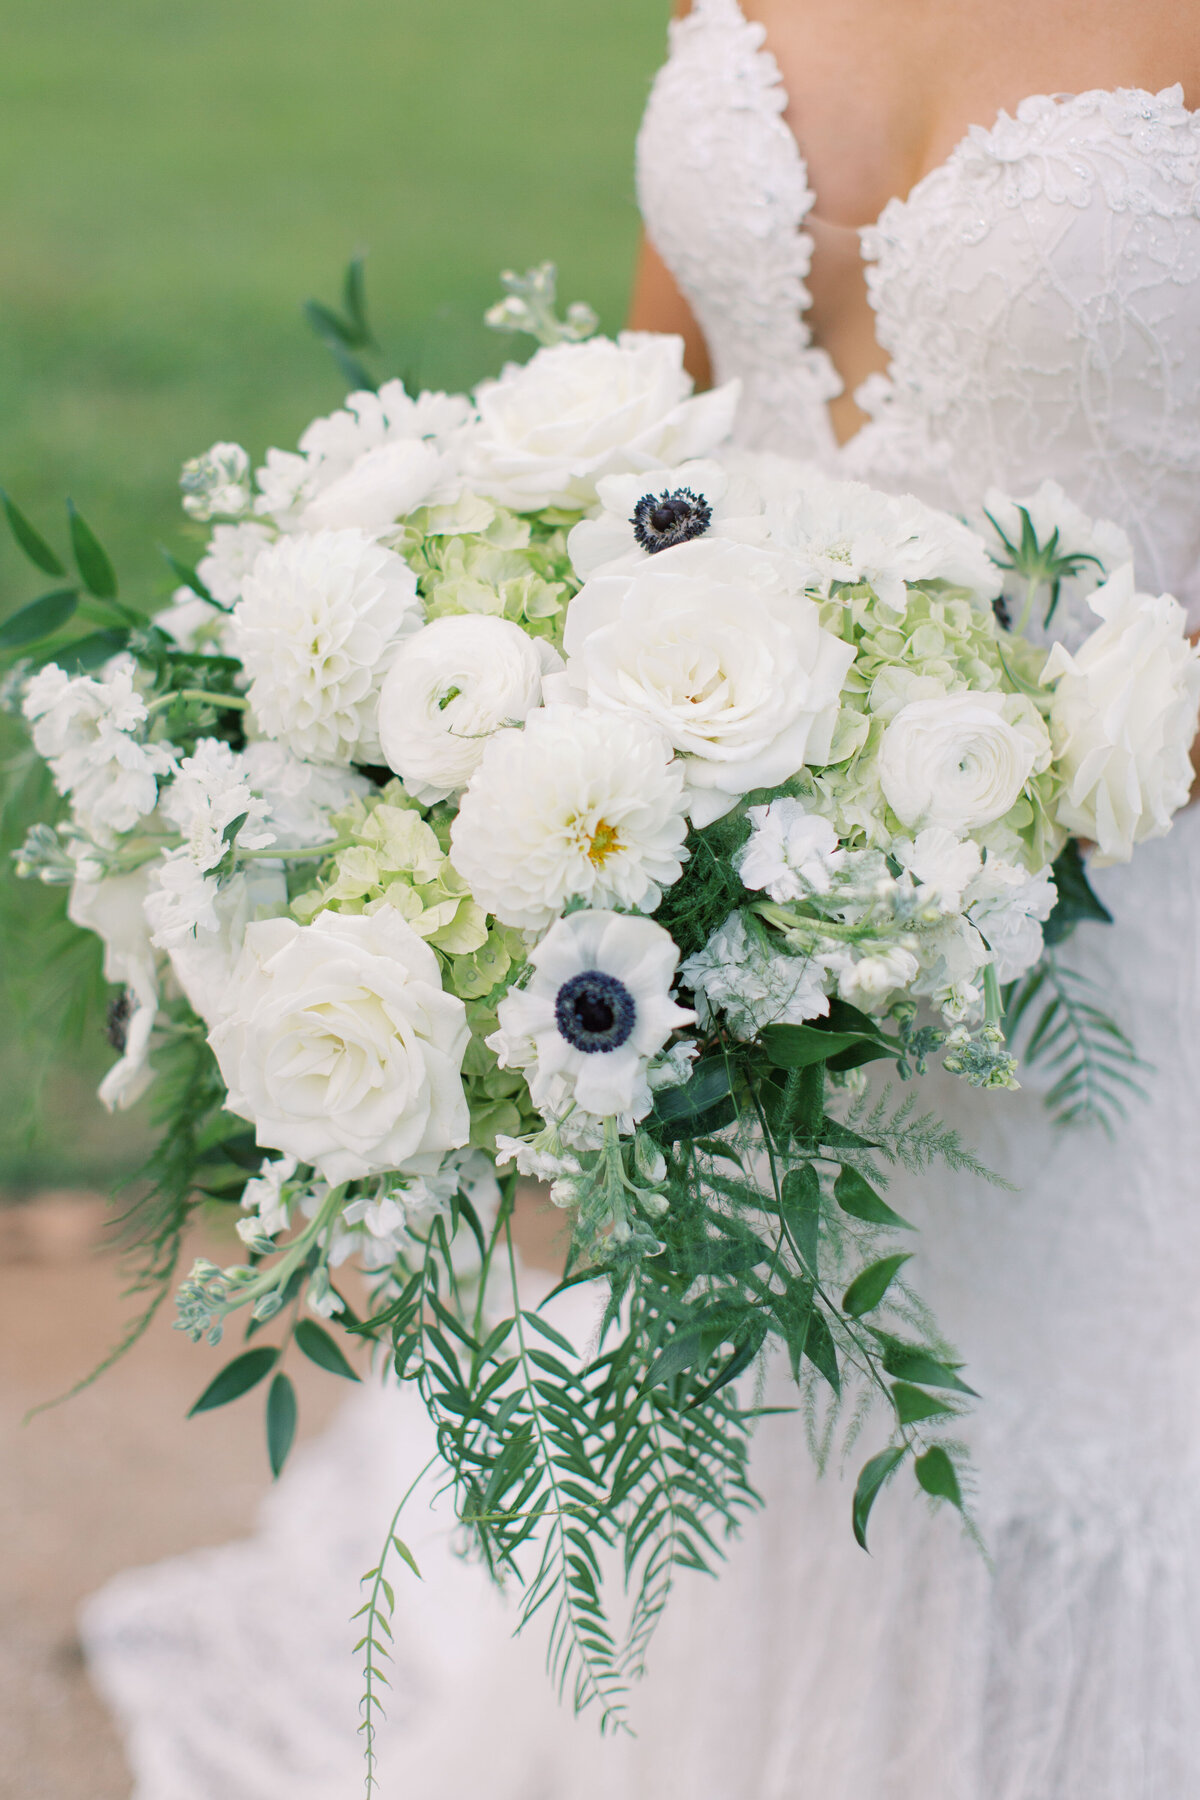 Melton_Wedding__Middleton_Place_Plantation_Charleston_South_Carolina_Jacksonville_Florida_Devon_Donnahoo_Photography__0309